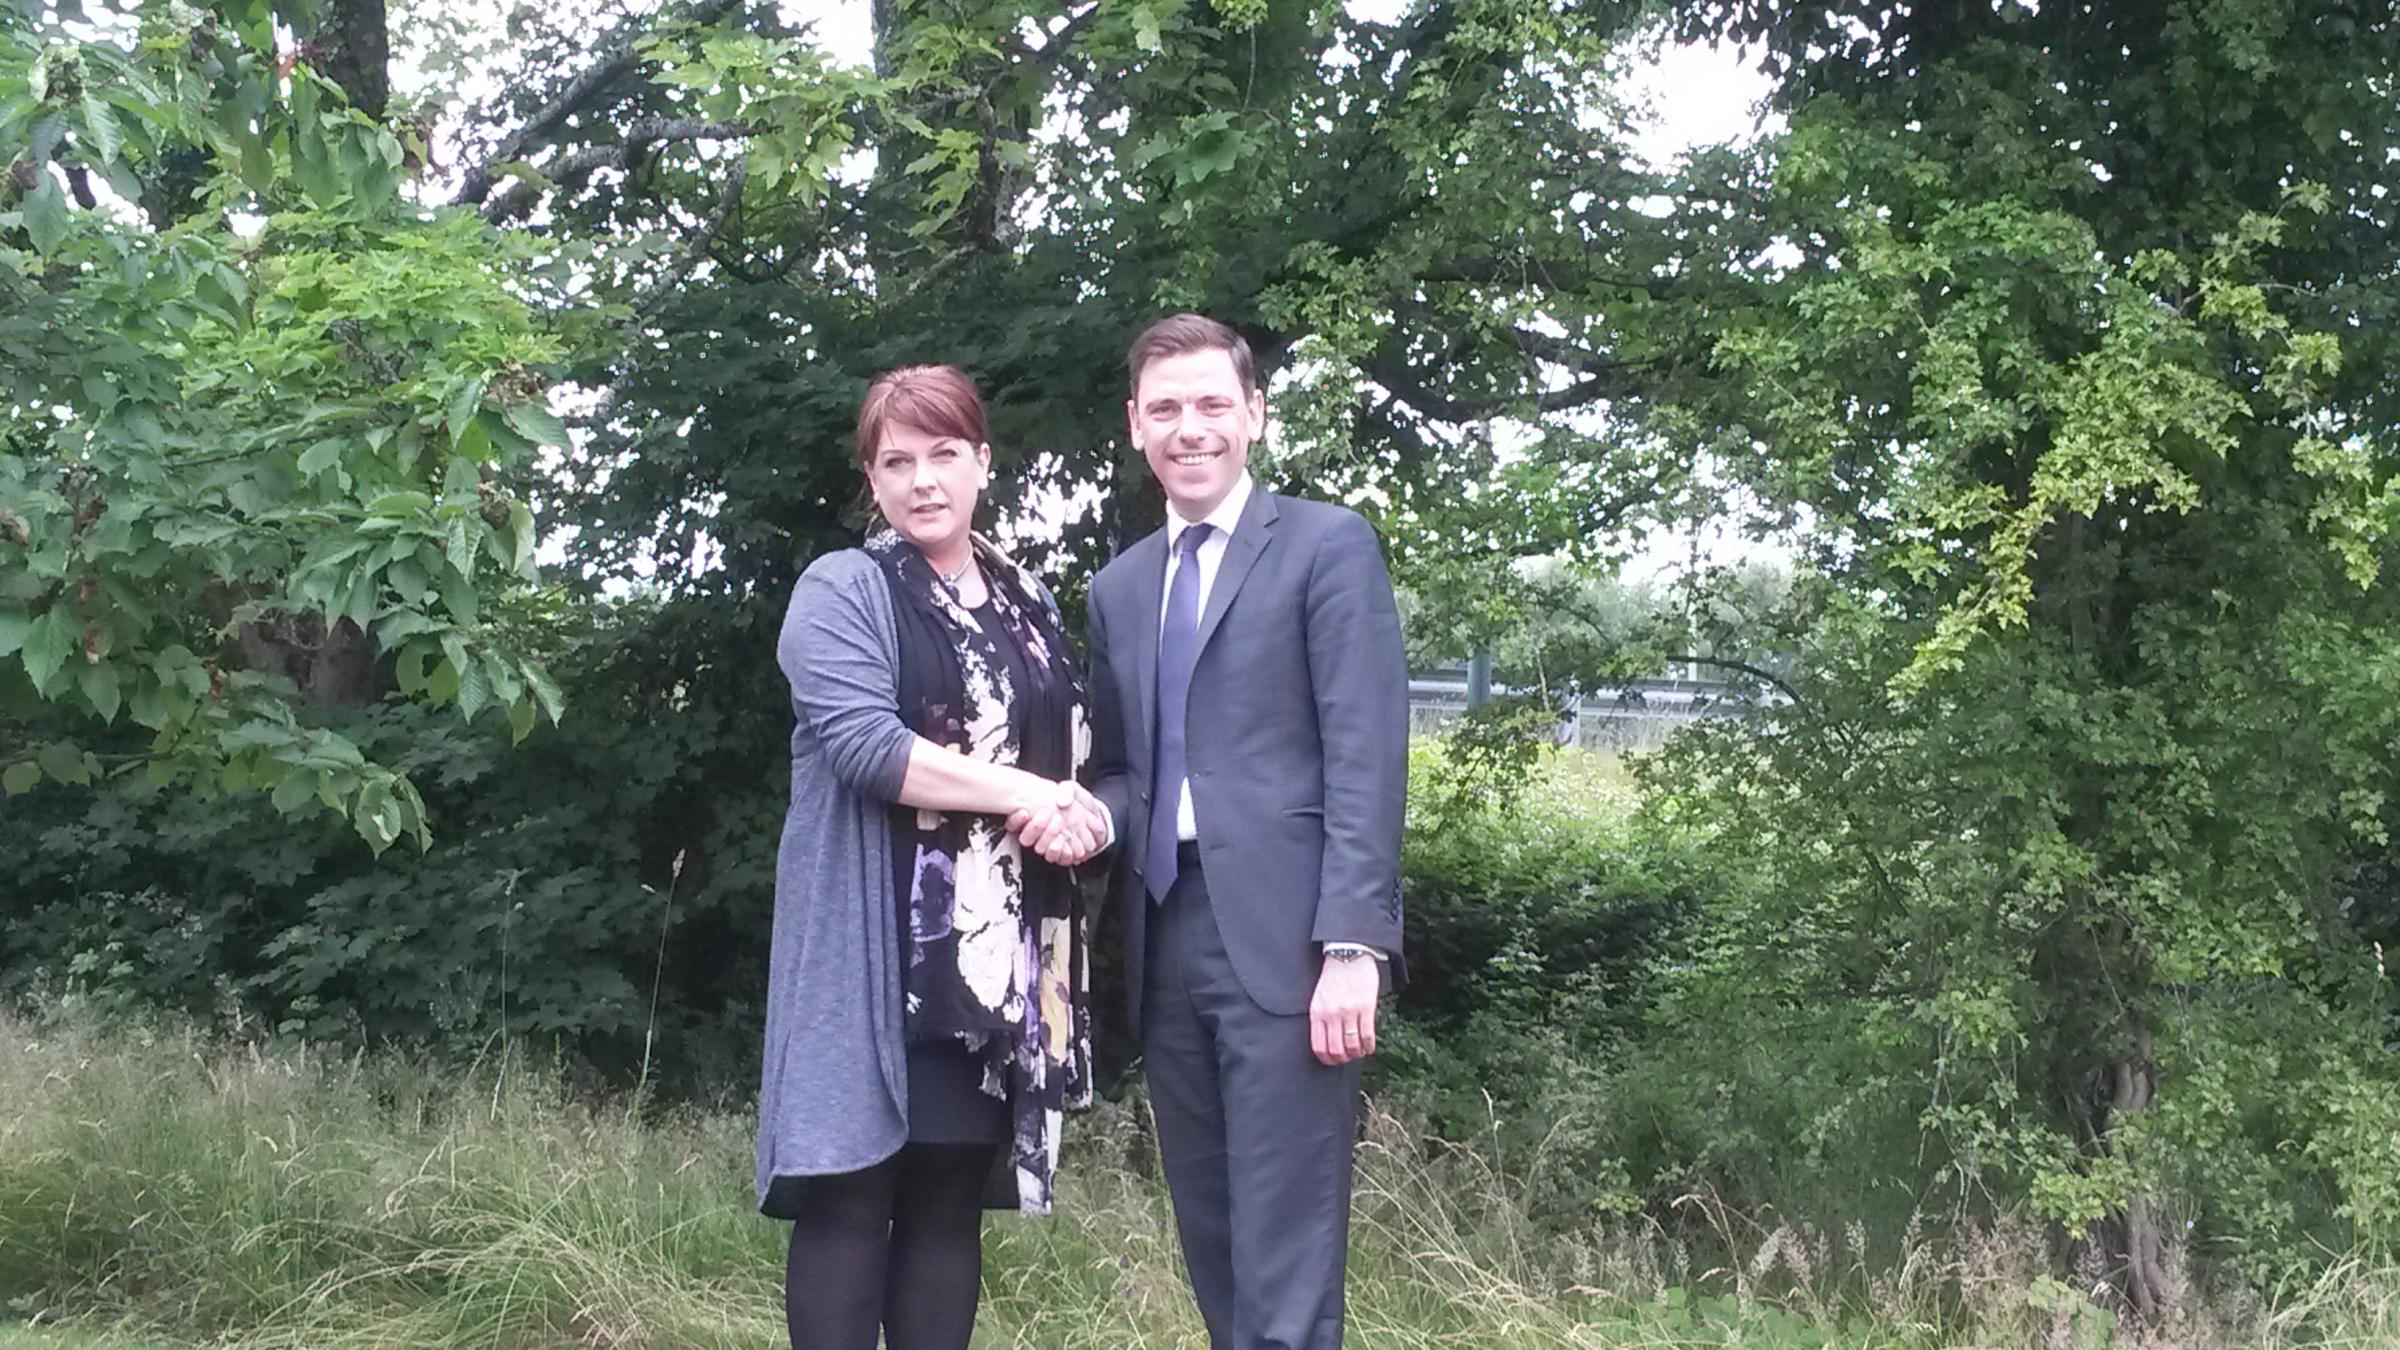 SELECTED: Chris Evans MP has welcomed the selection of Rhianon Passmore as the assembly candidate.